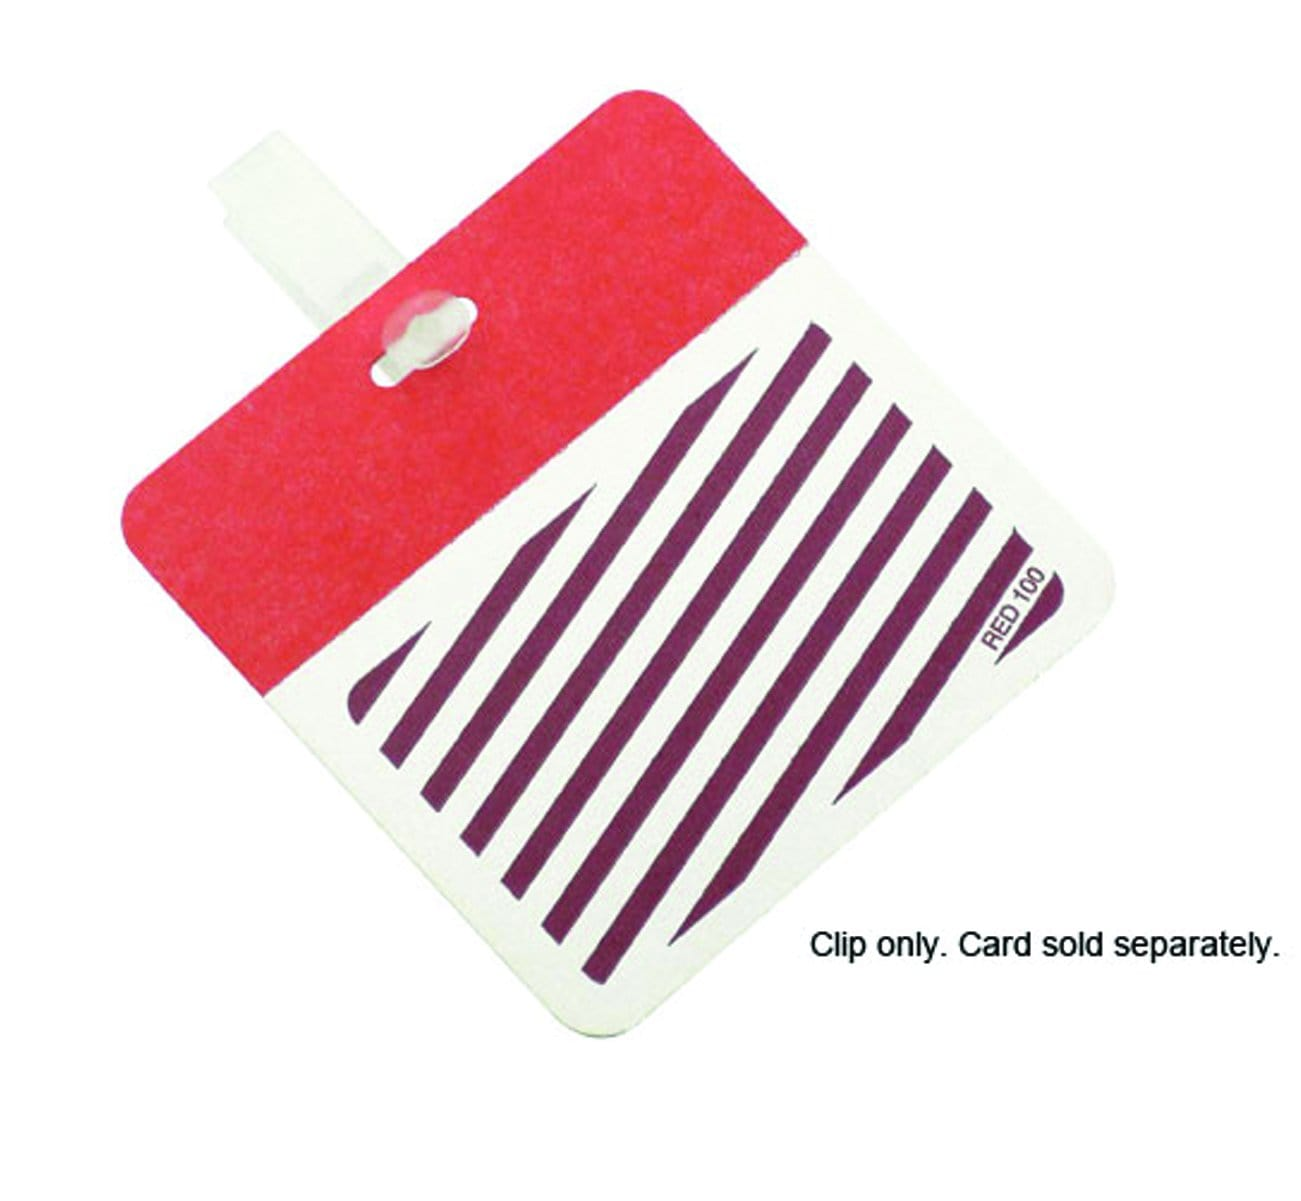 Reusable Plastic Cardclip - Badge Clip (Bag of 500 Clips) P/N 08075